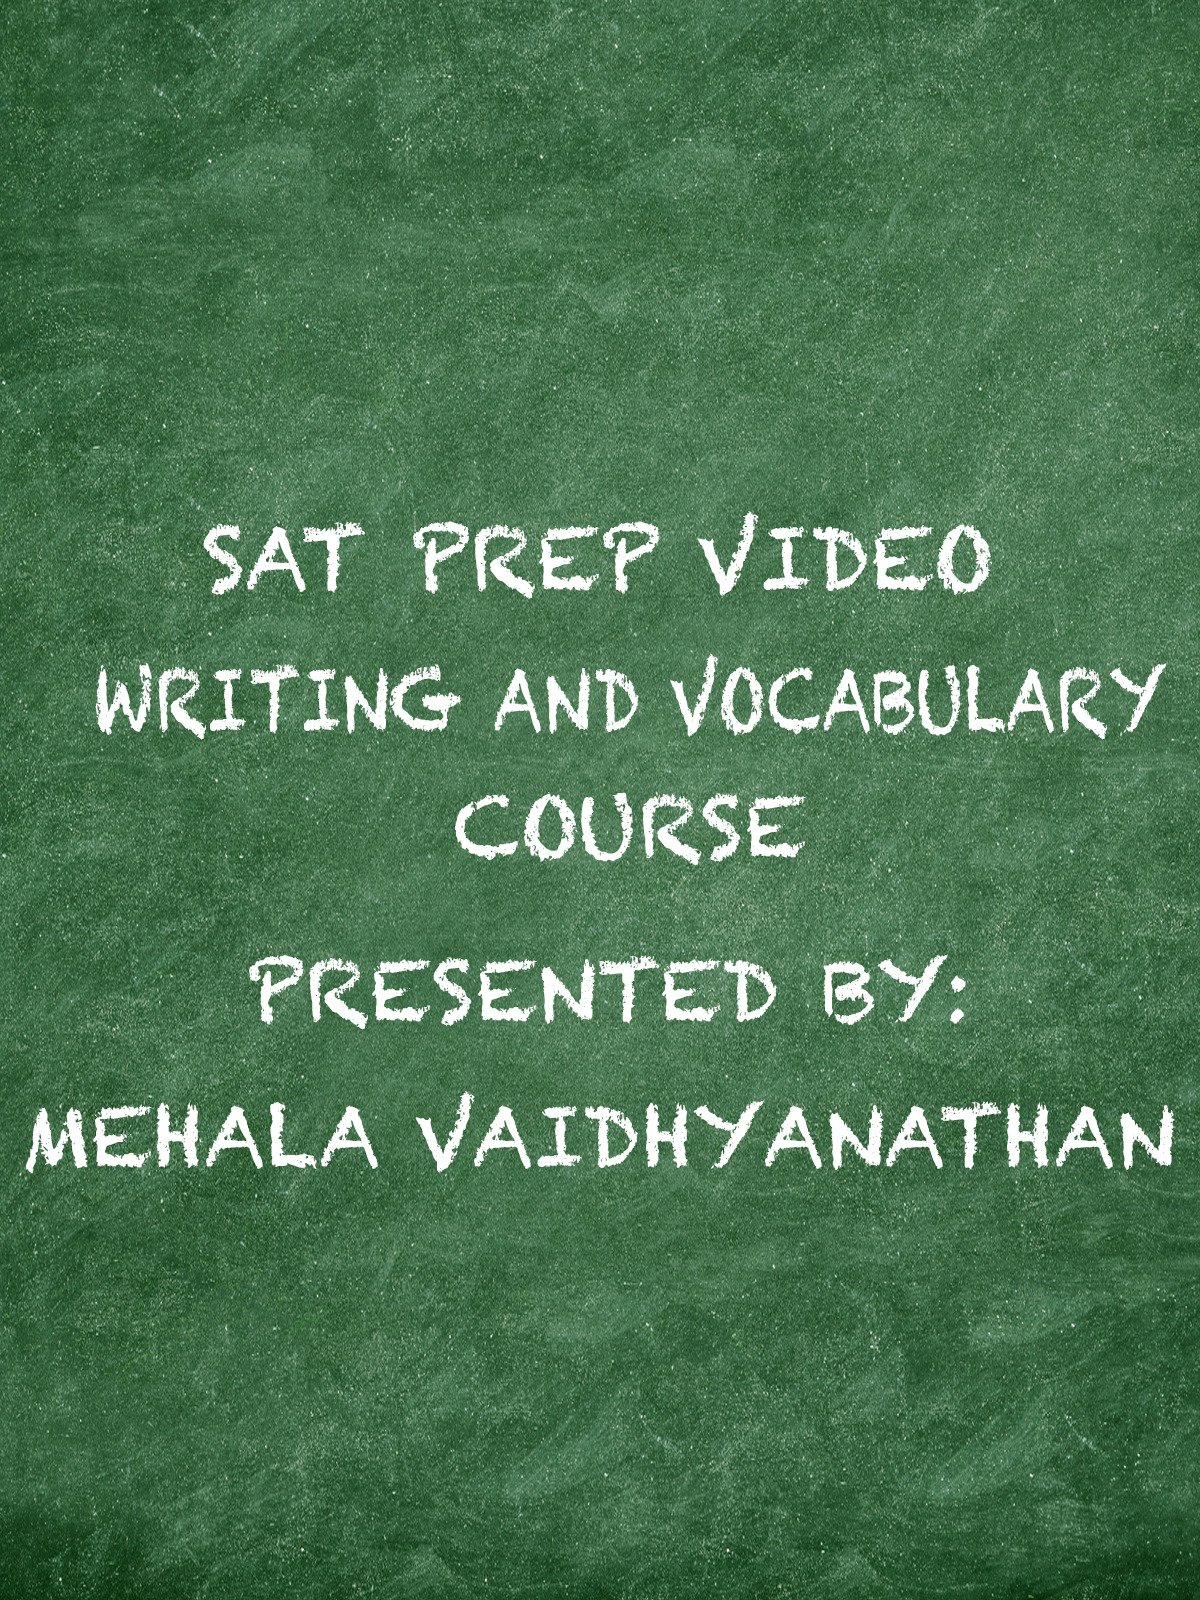 SAT Prep Video Writing and Vocabulary Course Presented by: Mehala Vaidhyanathan